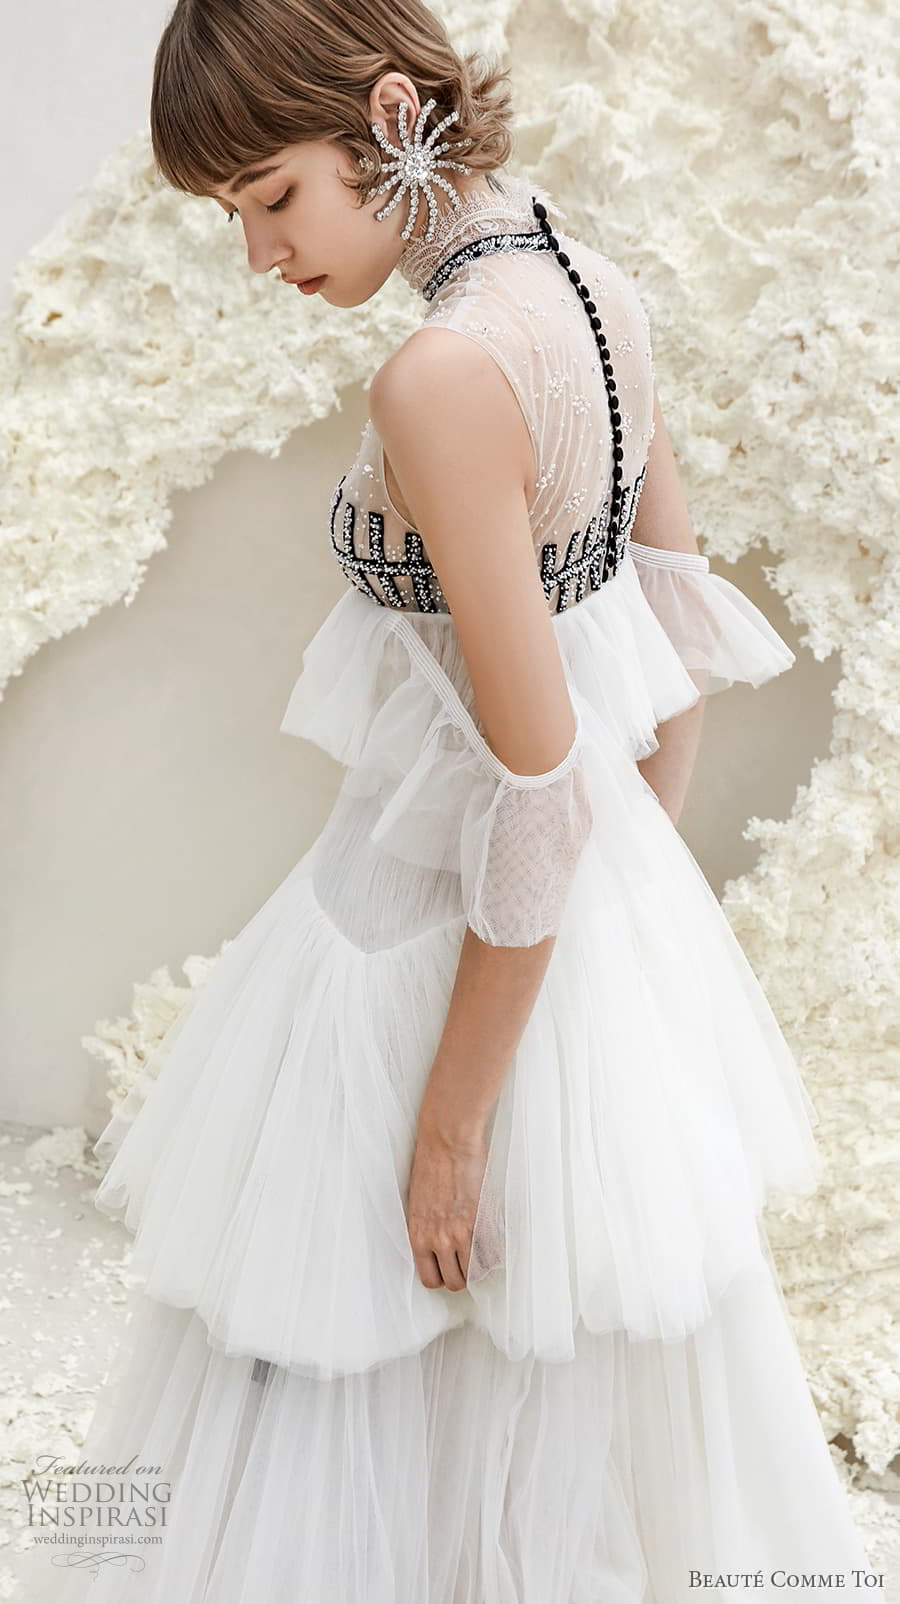 beaute comme toi spring 2022 bridal sleeveless high neck lightly embellished bodice empire a line wedding dress sheer button back tiered skirt sweep train (faye) zbv